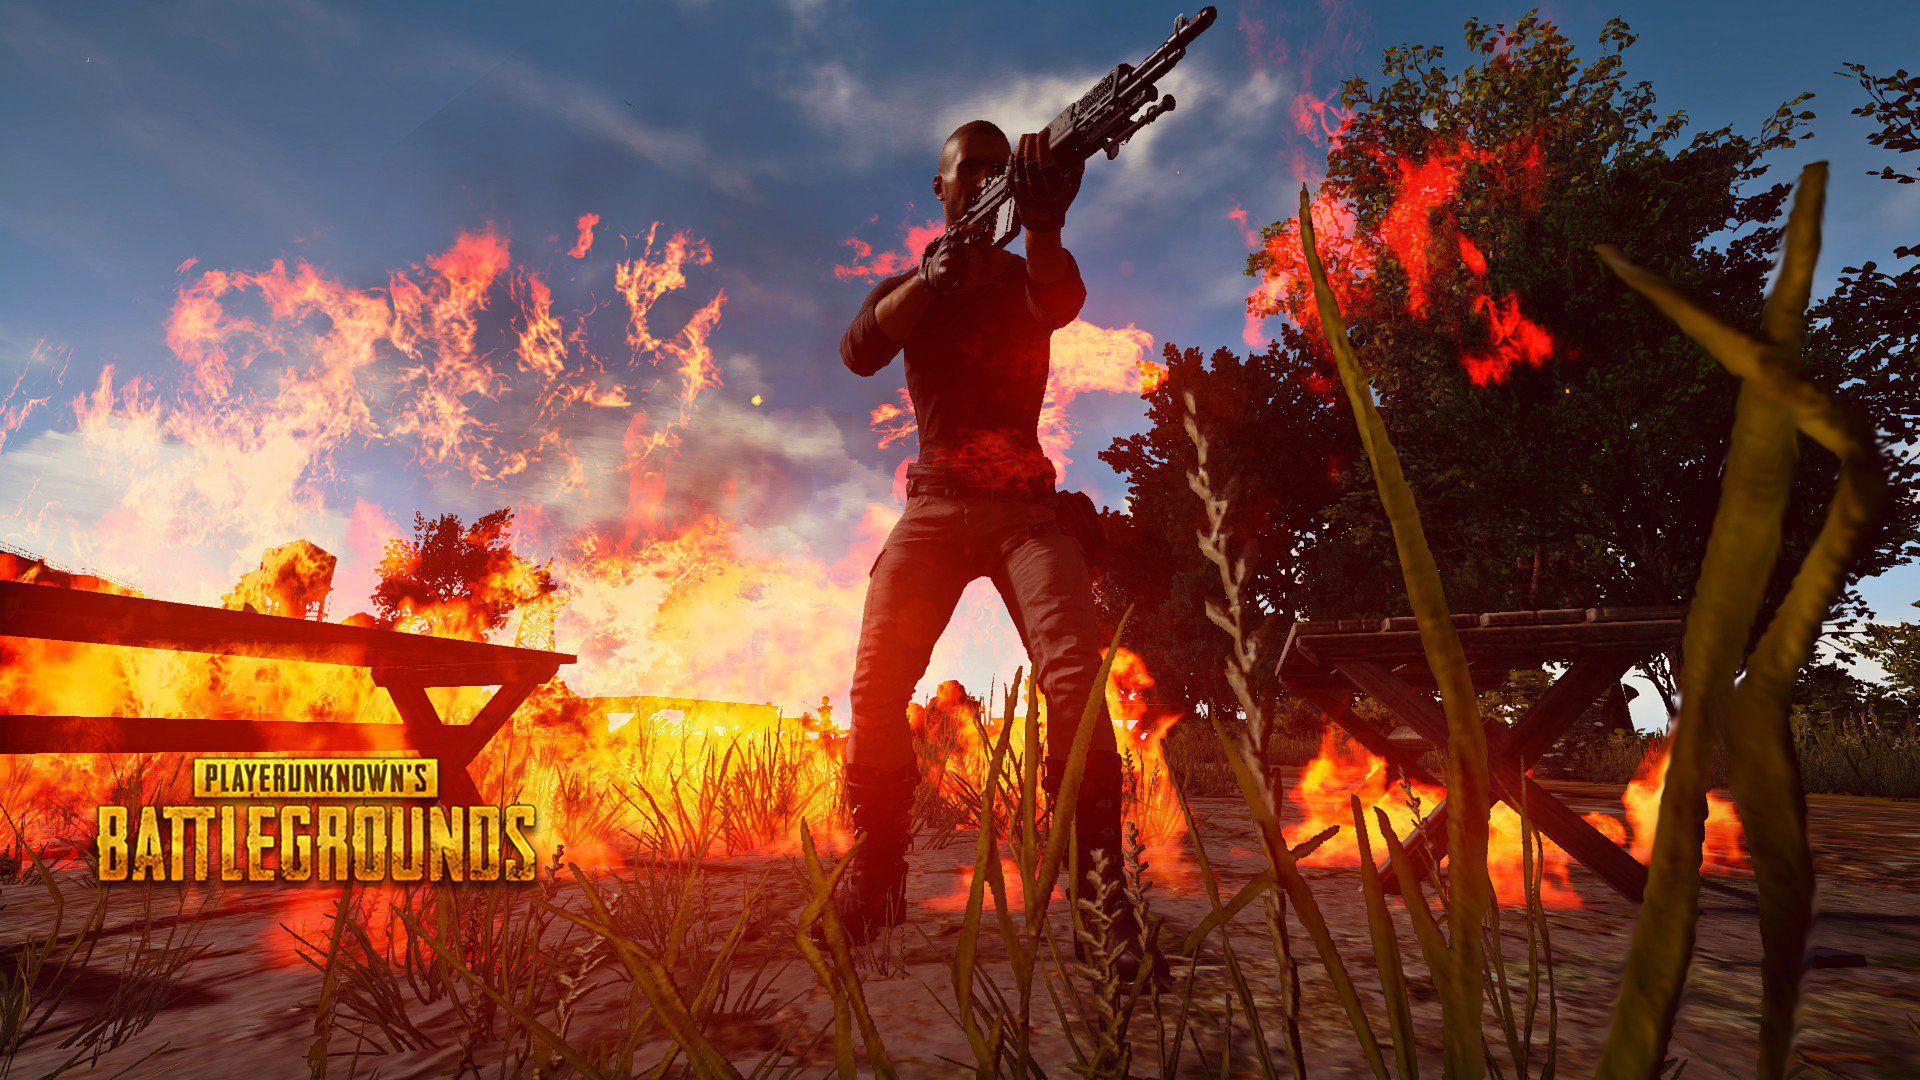 Pubg Wallpaper 4k Mobile: PlayerUnknown's Battlegrounds: PUBG Wallpapers And Photos